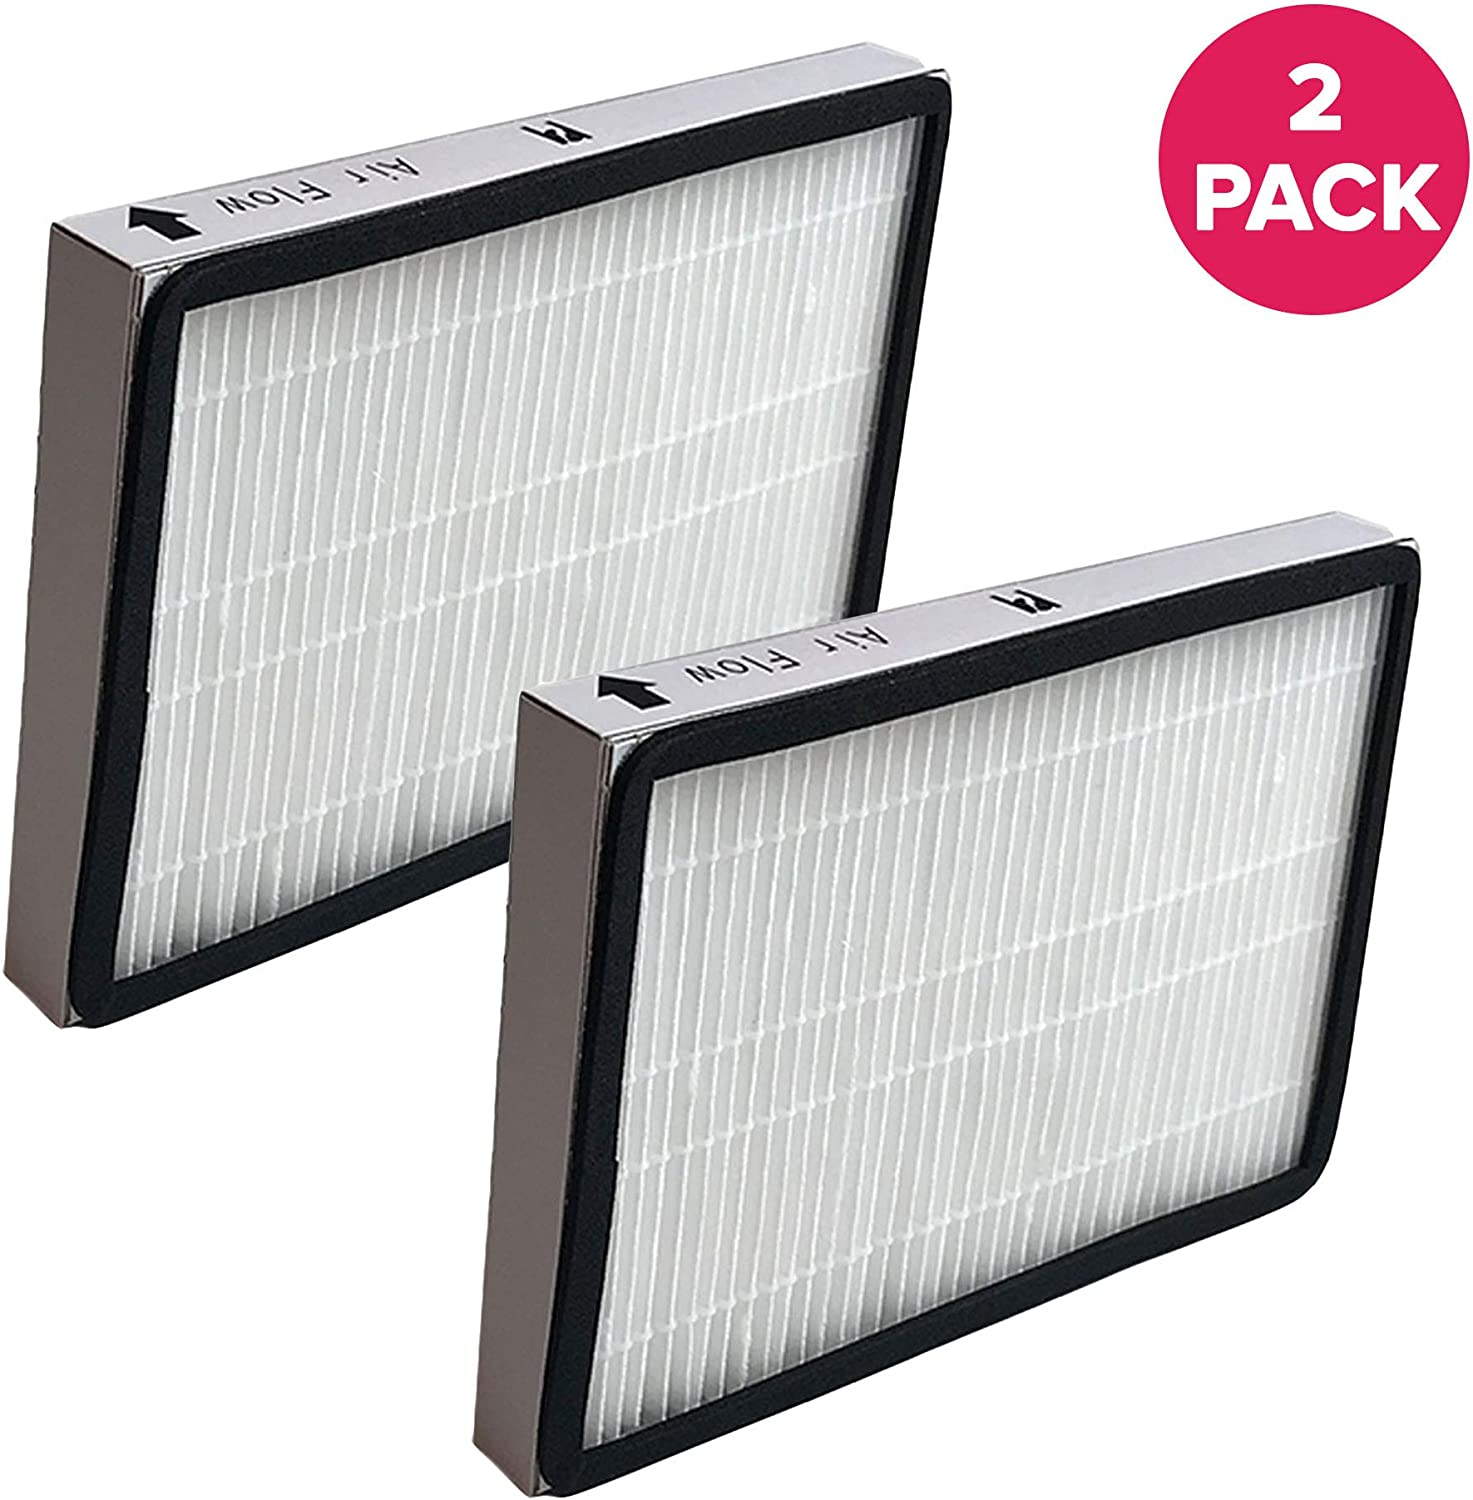 Crucial Vacuum Replacement Vacuum Filter Part # 86889, 20-86889, 40324 - Compatible with Kenmore Vacs - Kenmore EF1 HEPA Style Filter Fits Whispertone & Progressive - for Home Use (2 Pack)